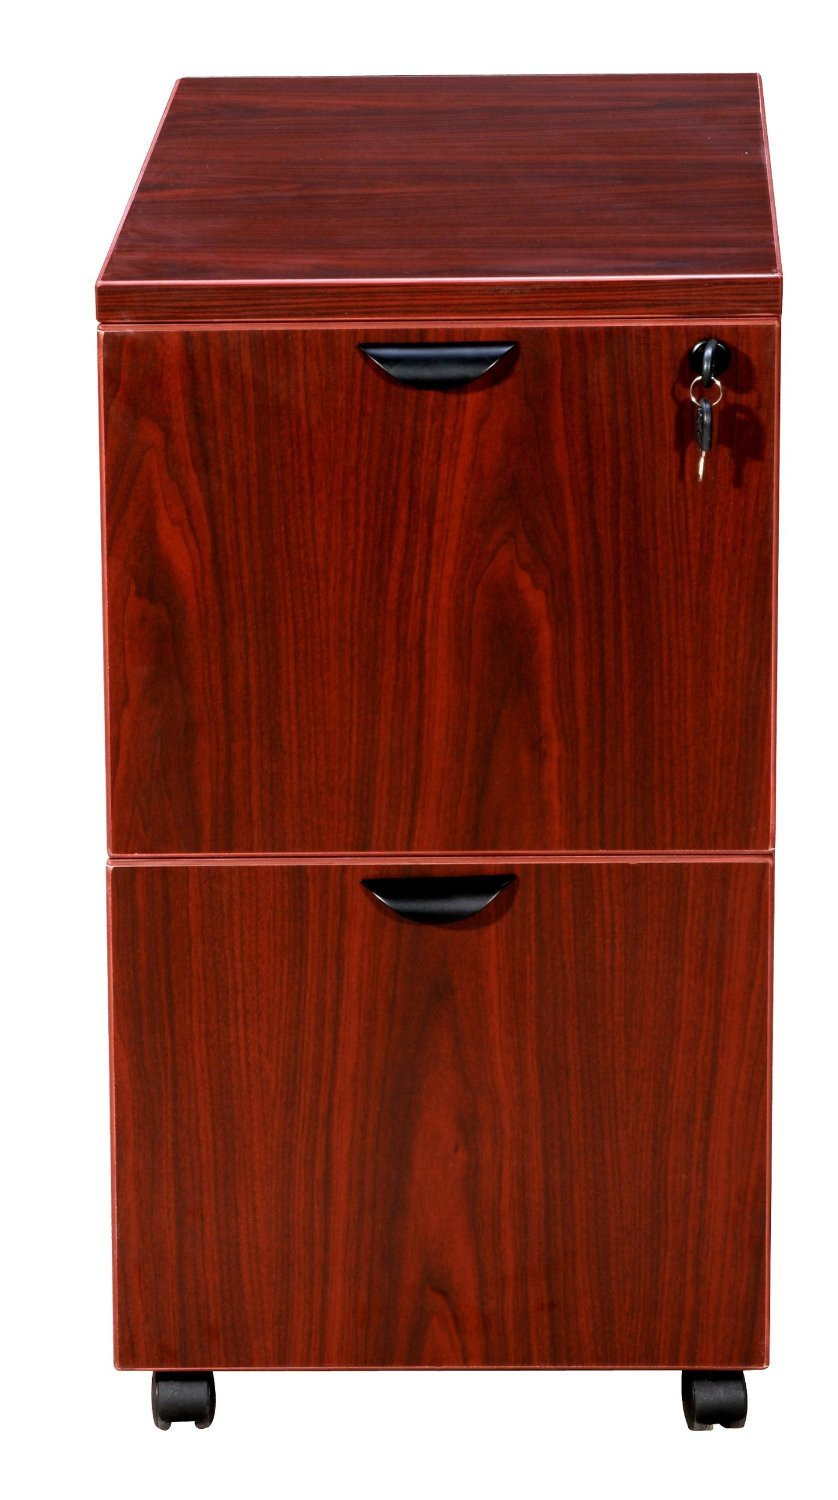 Boss Office Products N149-M Boss Mobile Pedestal, File/File Mahogany 16*22*29.5H from Boss Office Products